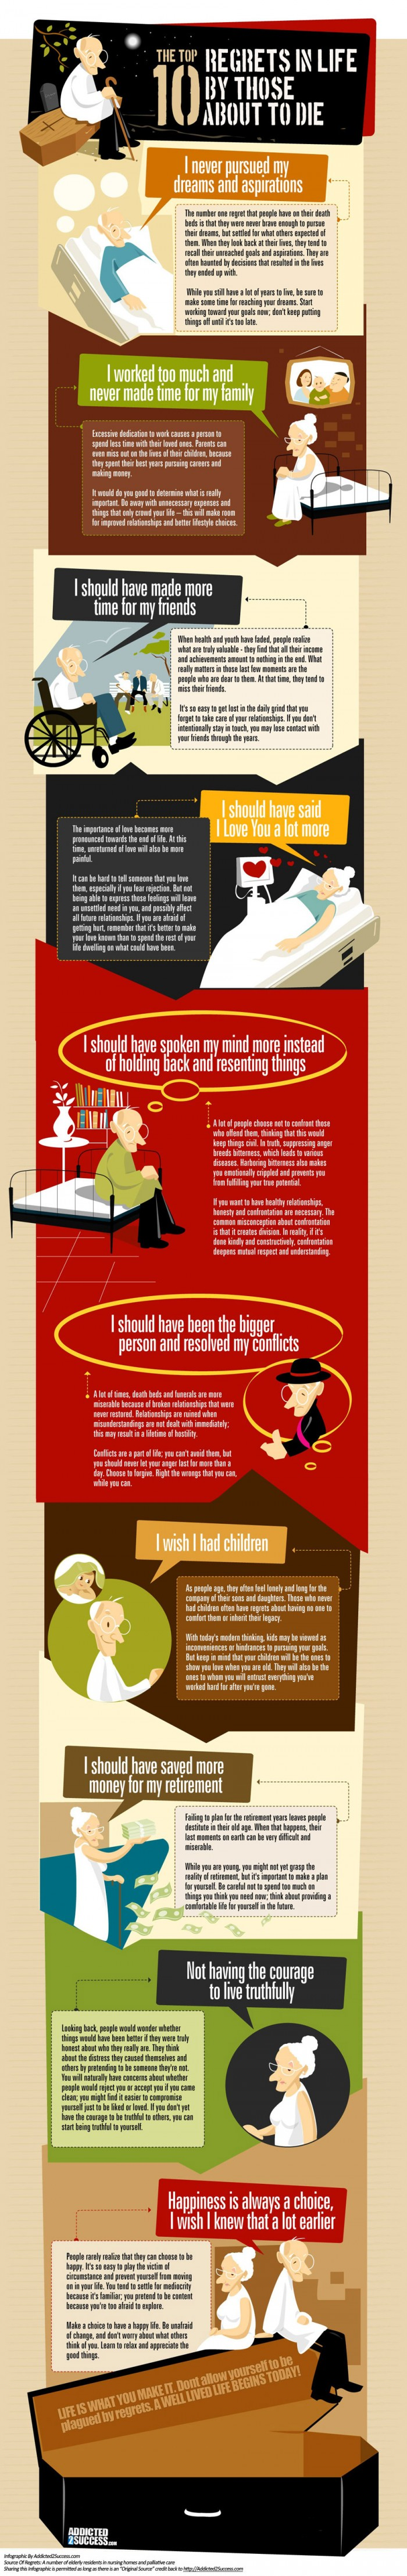 Infographic The Top 10 Regrets In Life By Those About To Die-Addicted2Success-700x4434